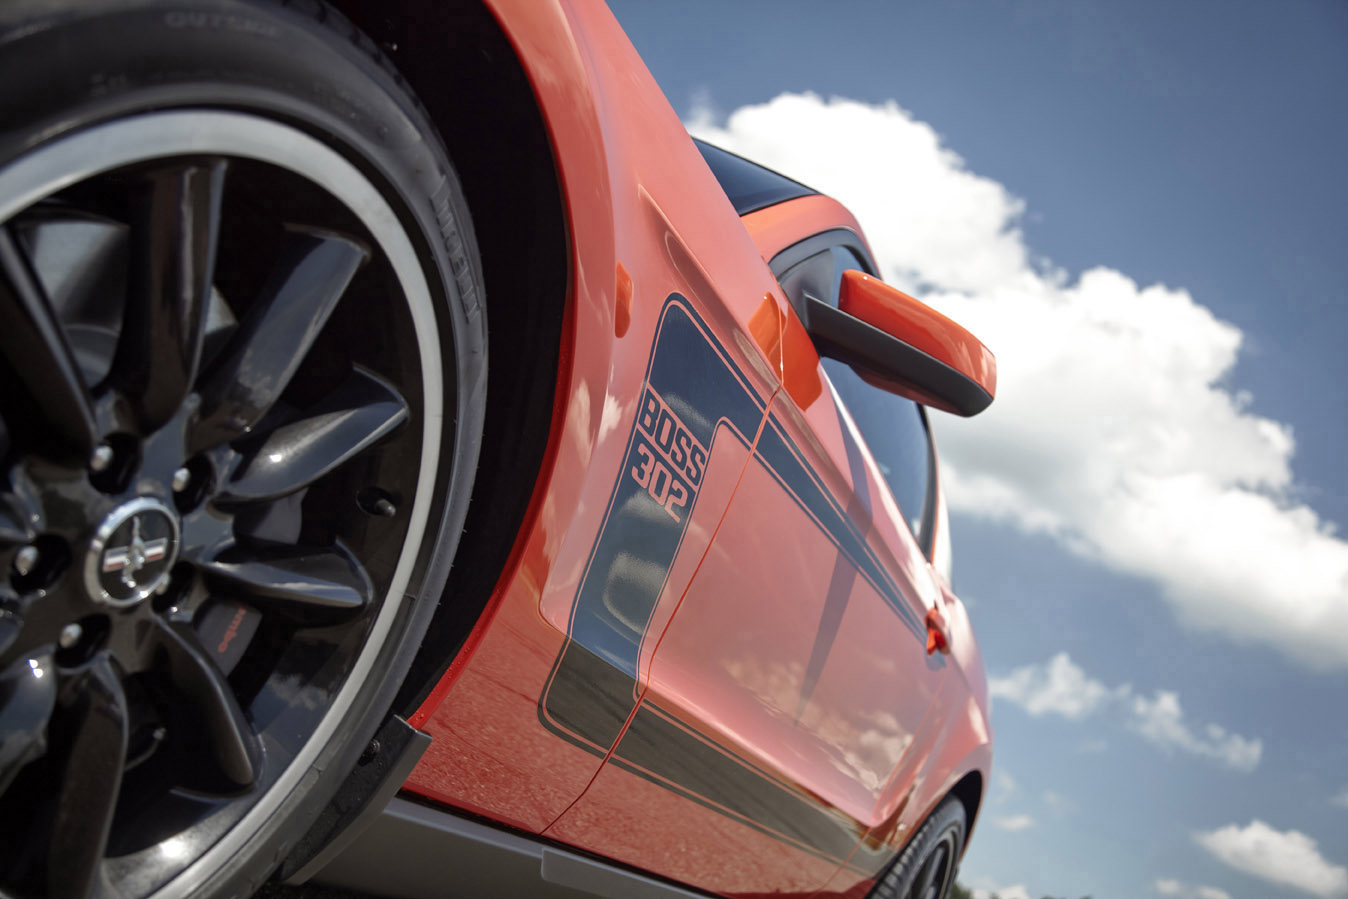 2012 Mustang Boss 302 Newest Model Gets Back To Track Roots Ford Keys